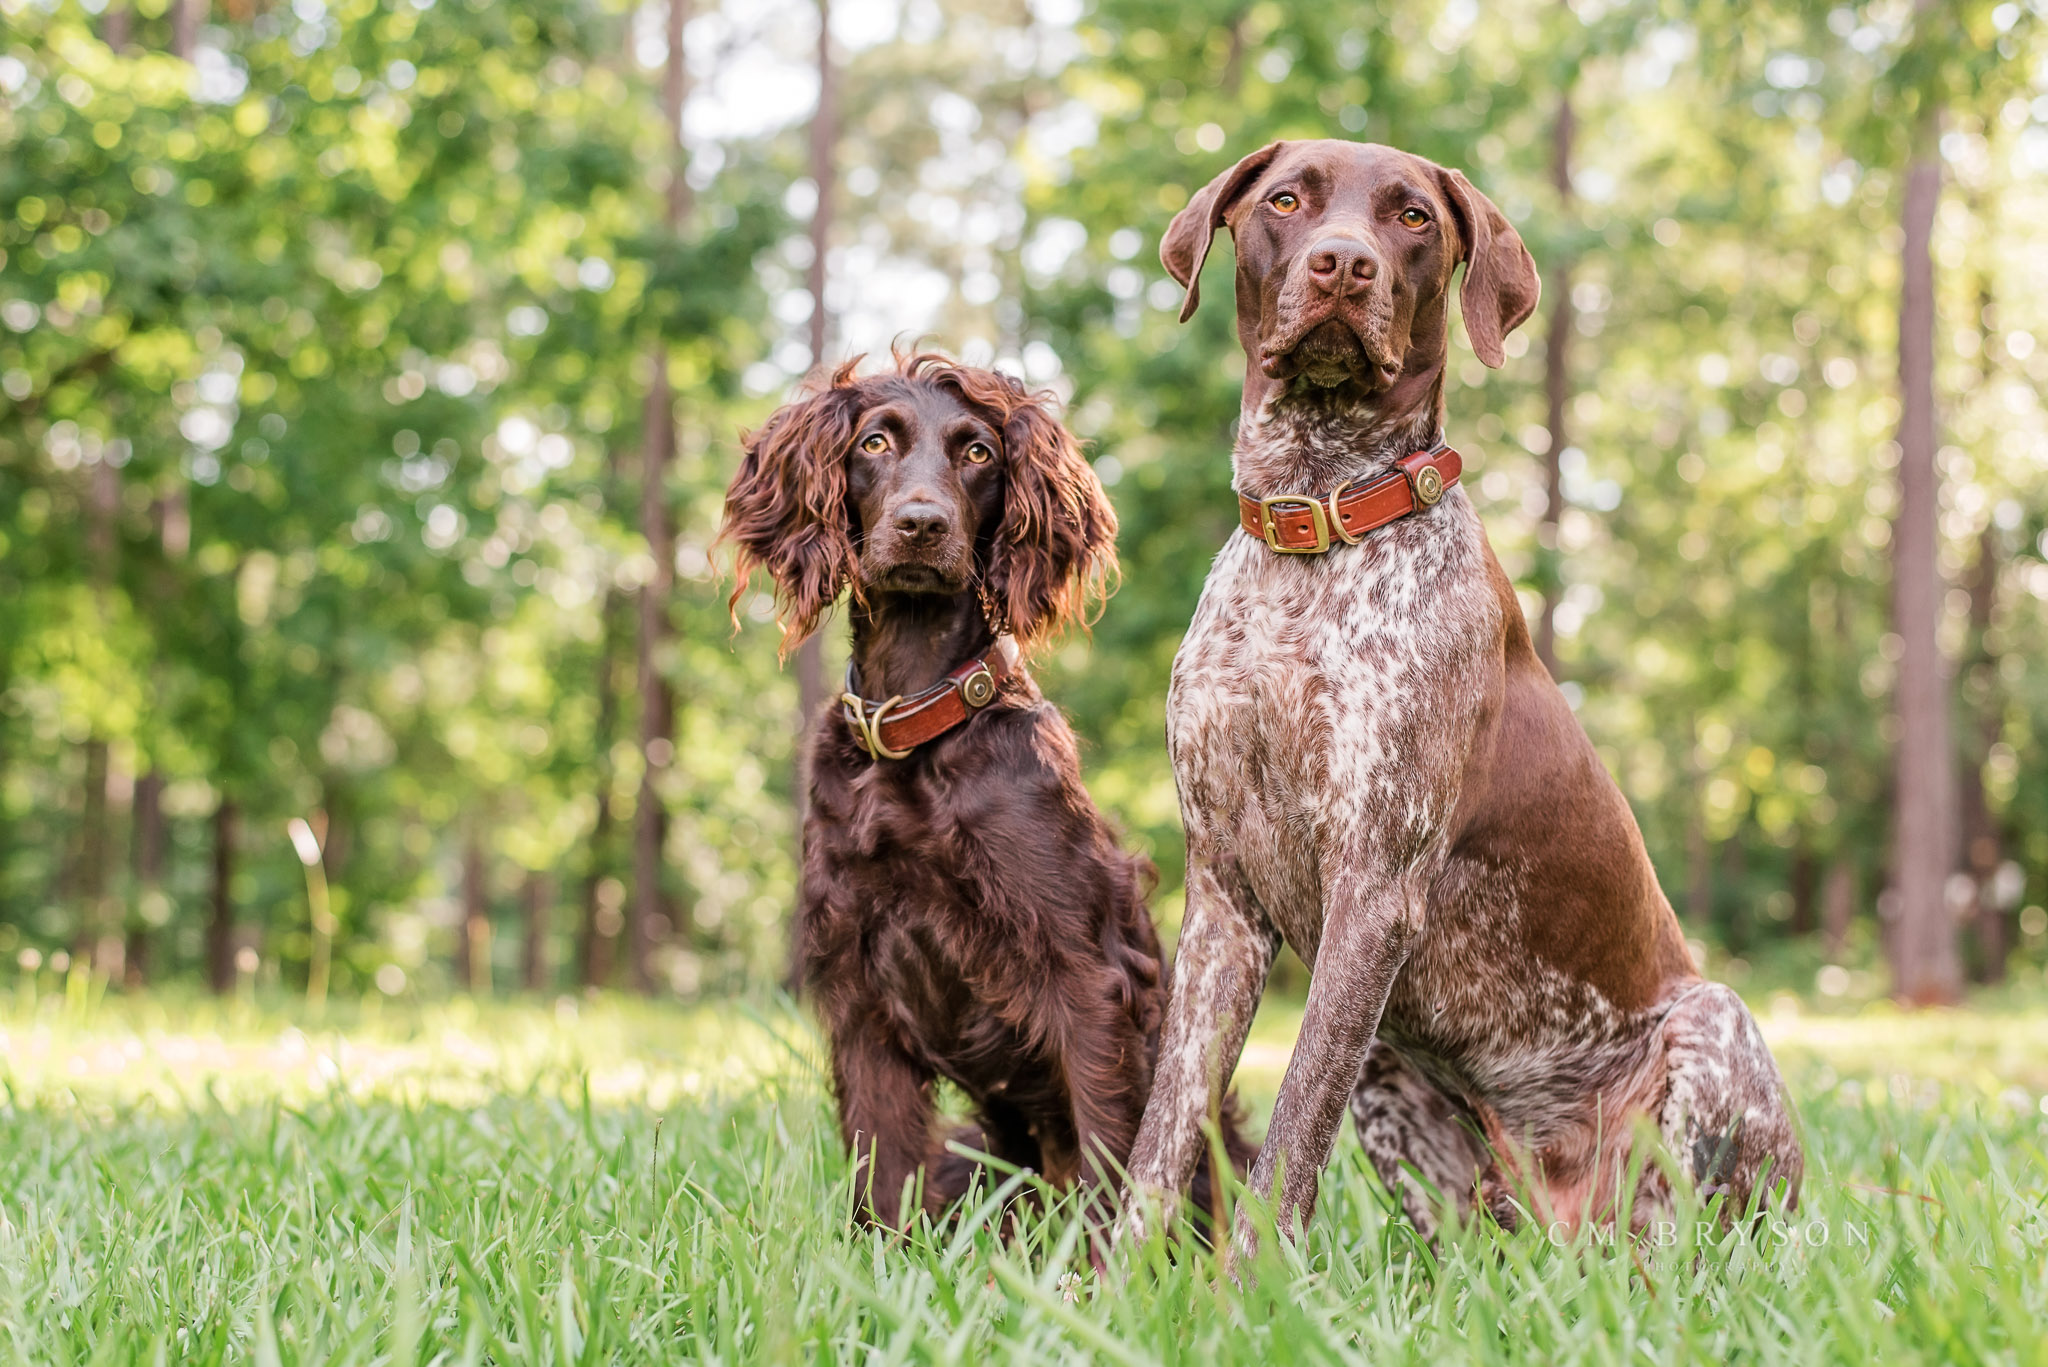 Athens pet photographer captures hunting dog breeds in a gorgeous natural setting.